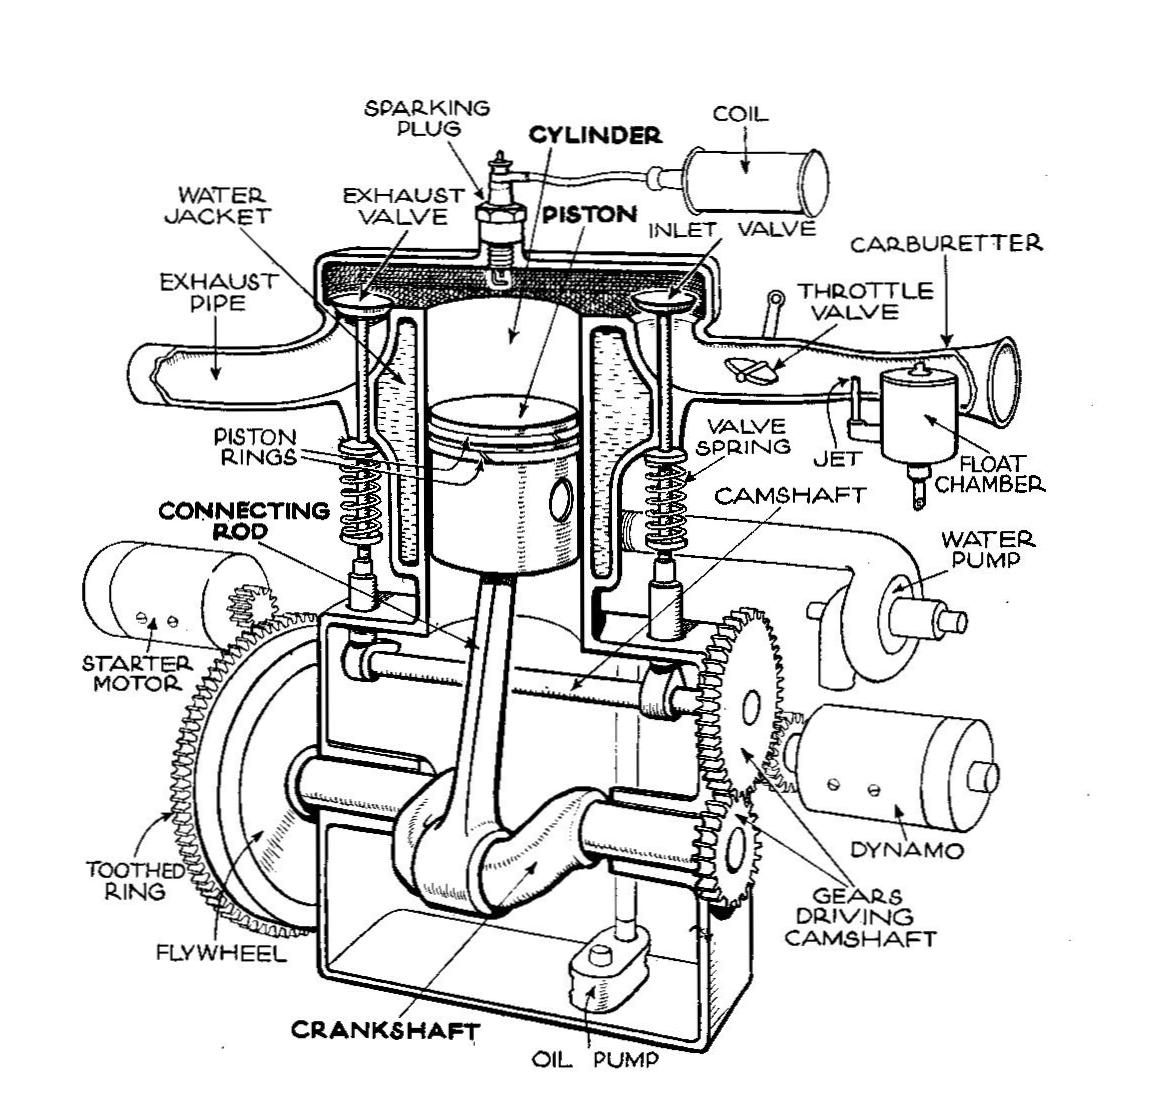 steam engine piston diagram file single cylinder t head engine autocar handbook 13th gas piston diagram